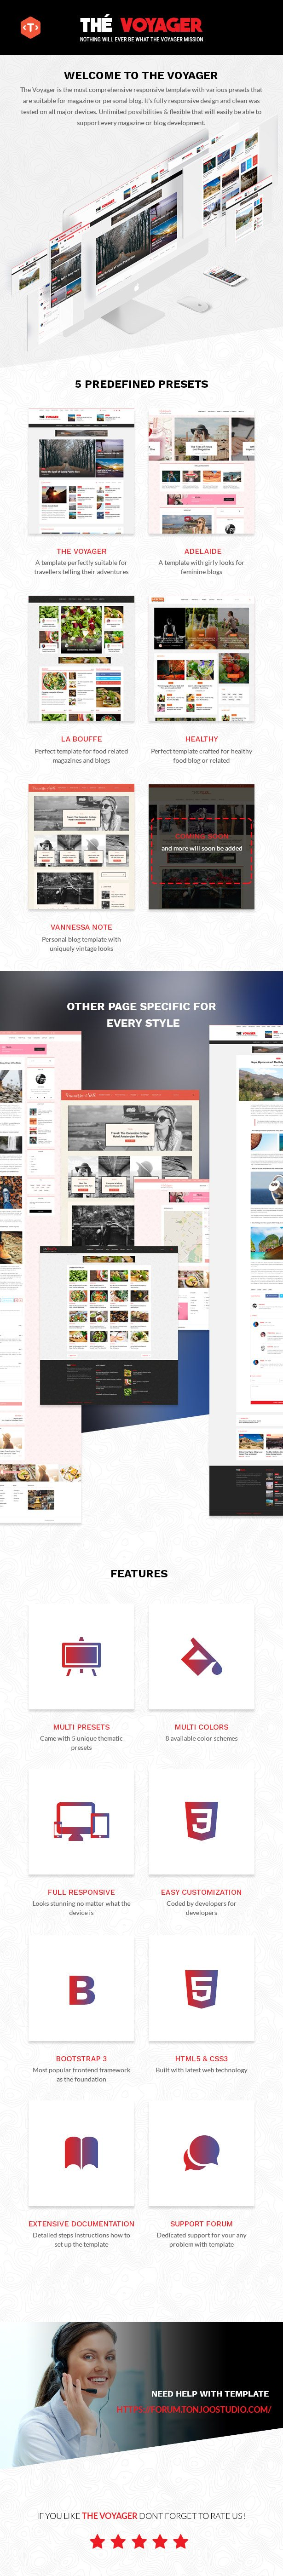 The Voyager - Multi Purpose Magazine and Blog HTML Template - 1